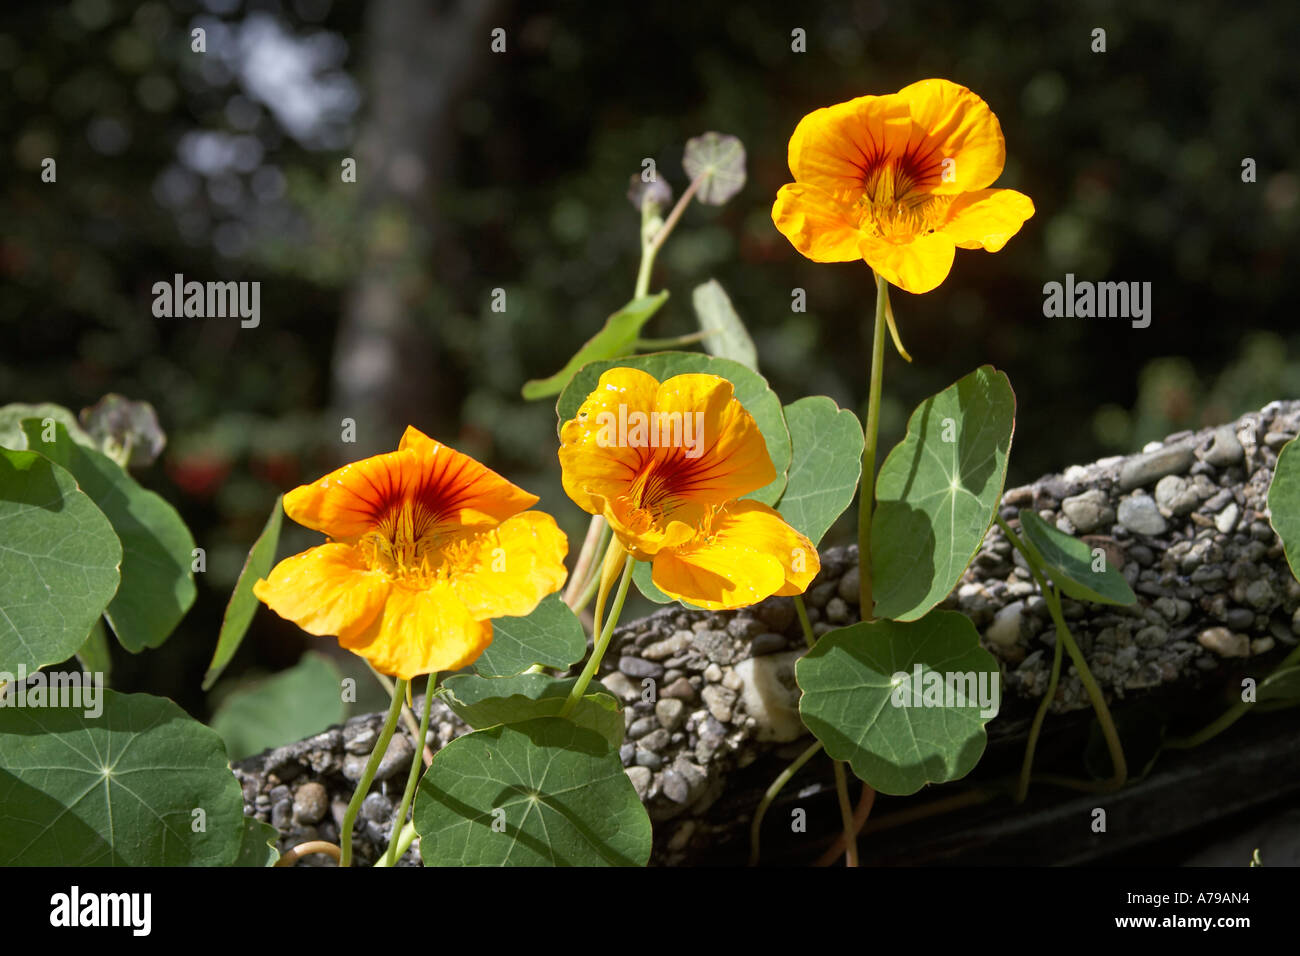 Yellow nasturtium flowers and leaves in county cork ireland or eire yellow nasturtium flowers and leaves in county cork ireland or eire mightylinksfo Images